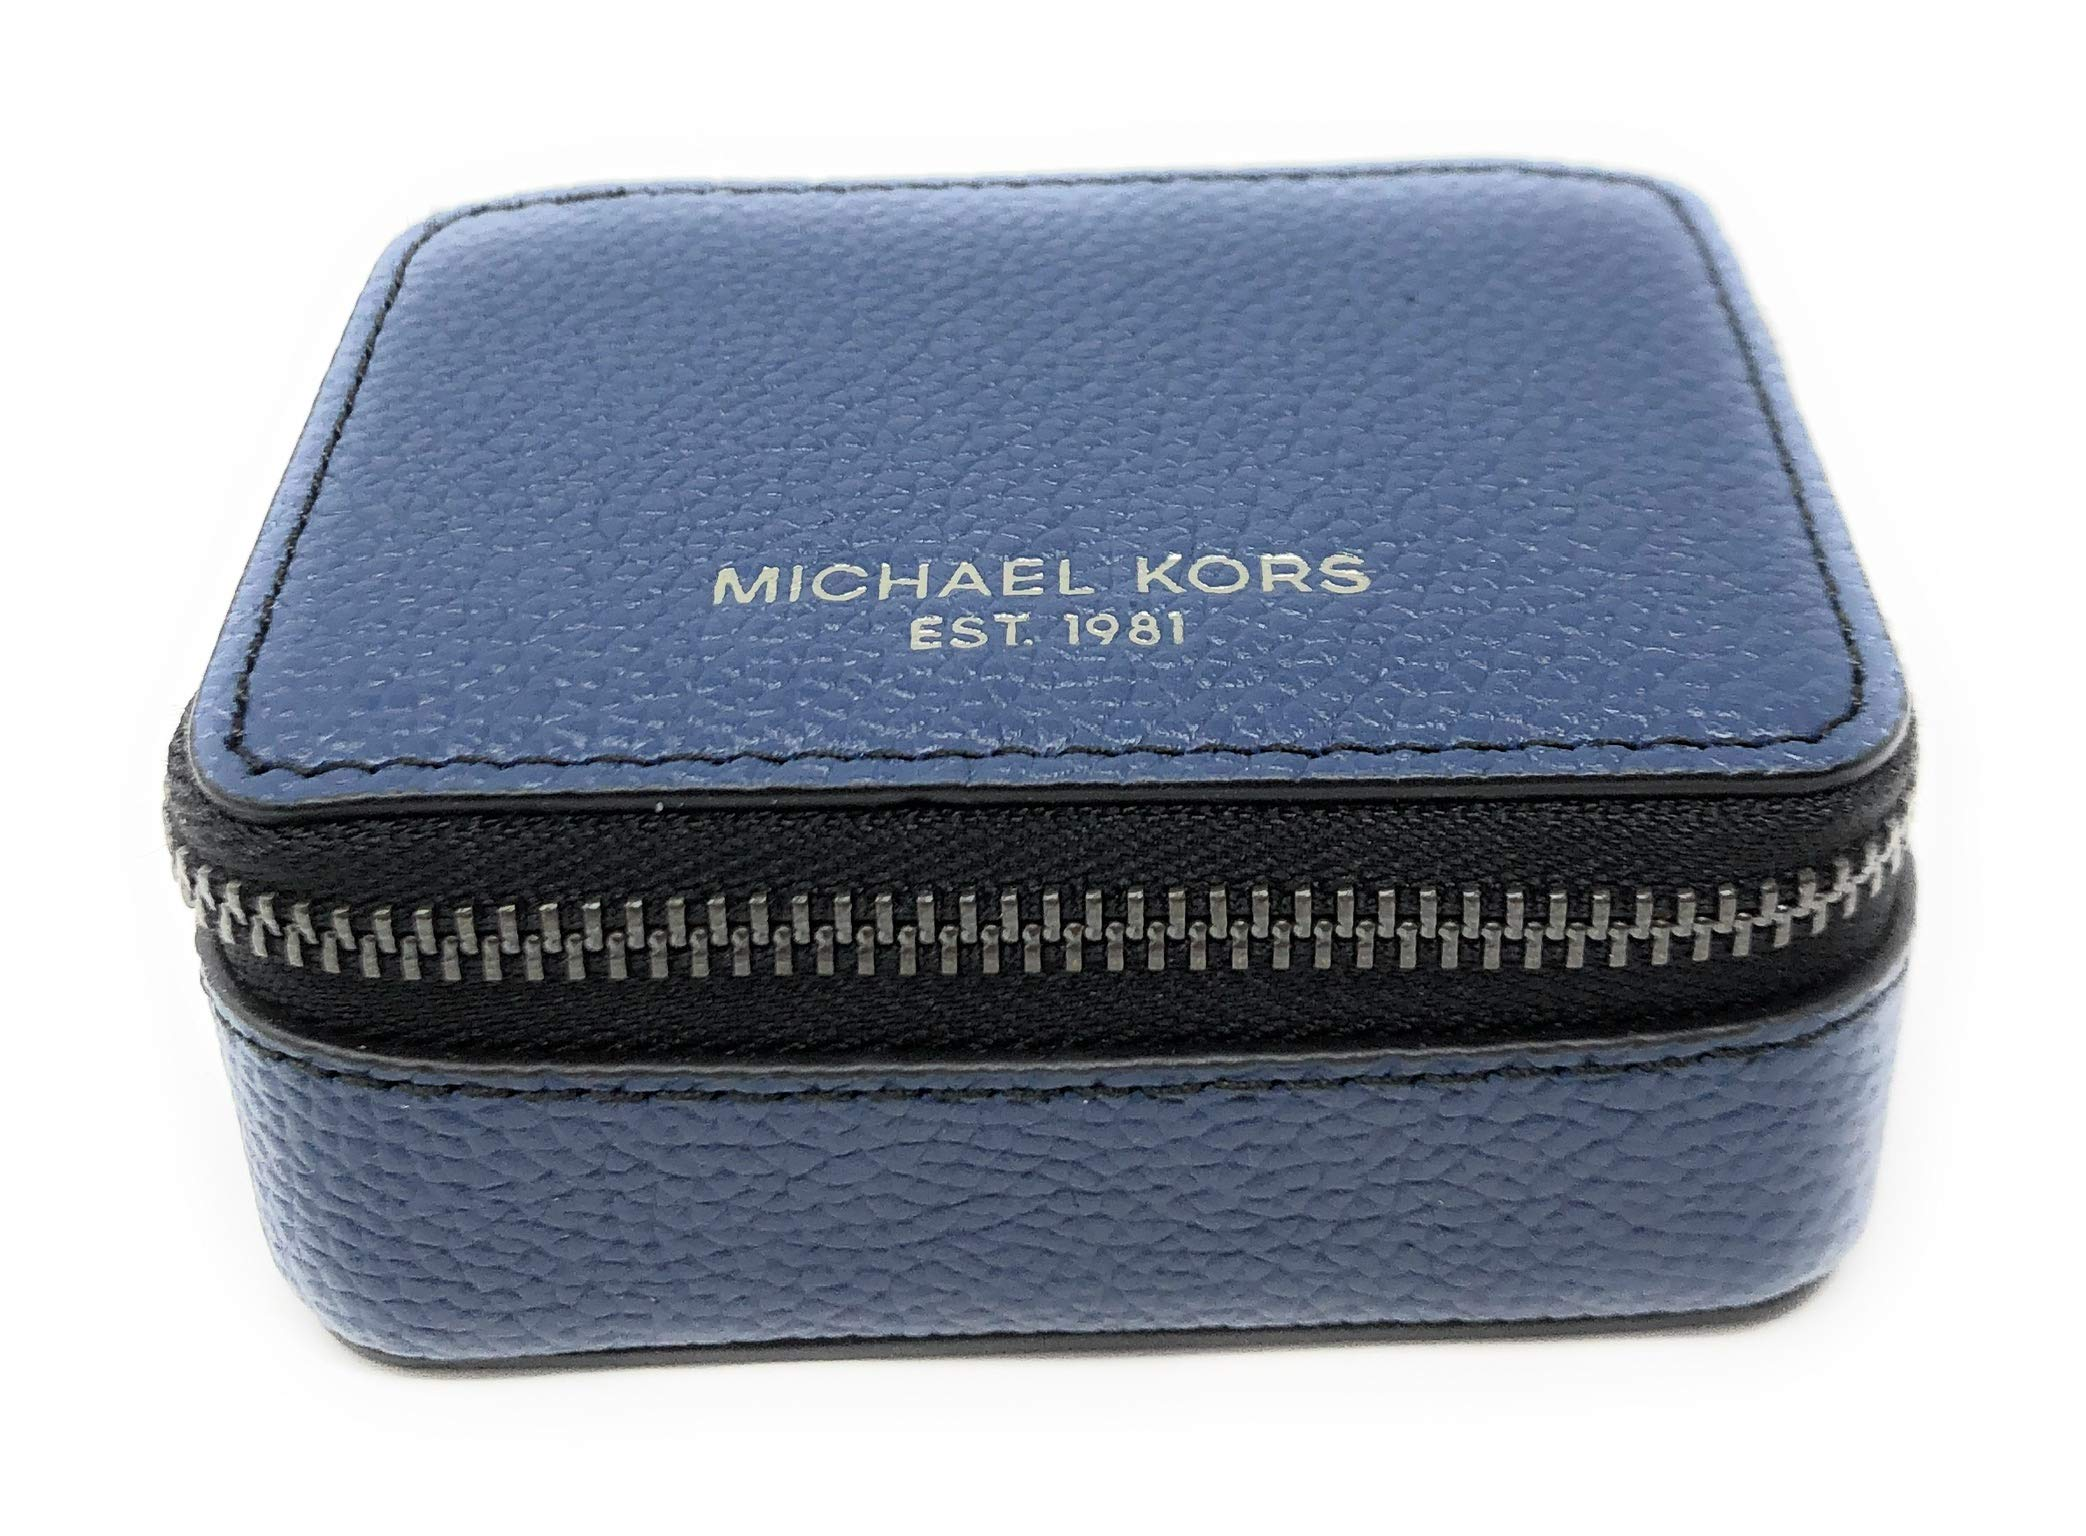 Michael Kors Pill Organizer Travel Pill Case Box Pebbled Leather Indigo Navy by Michael Kors